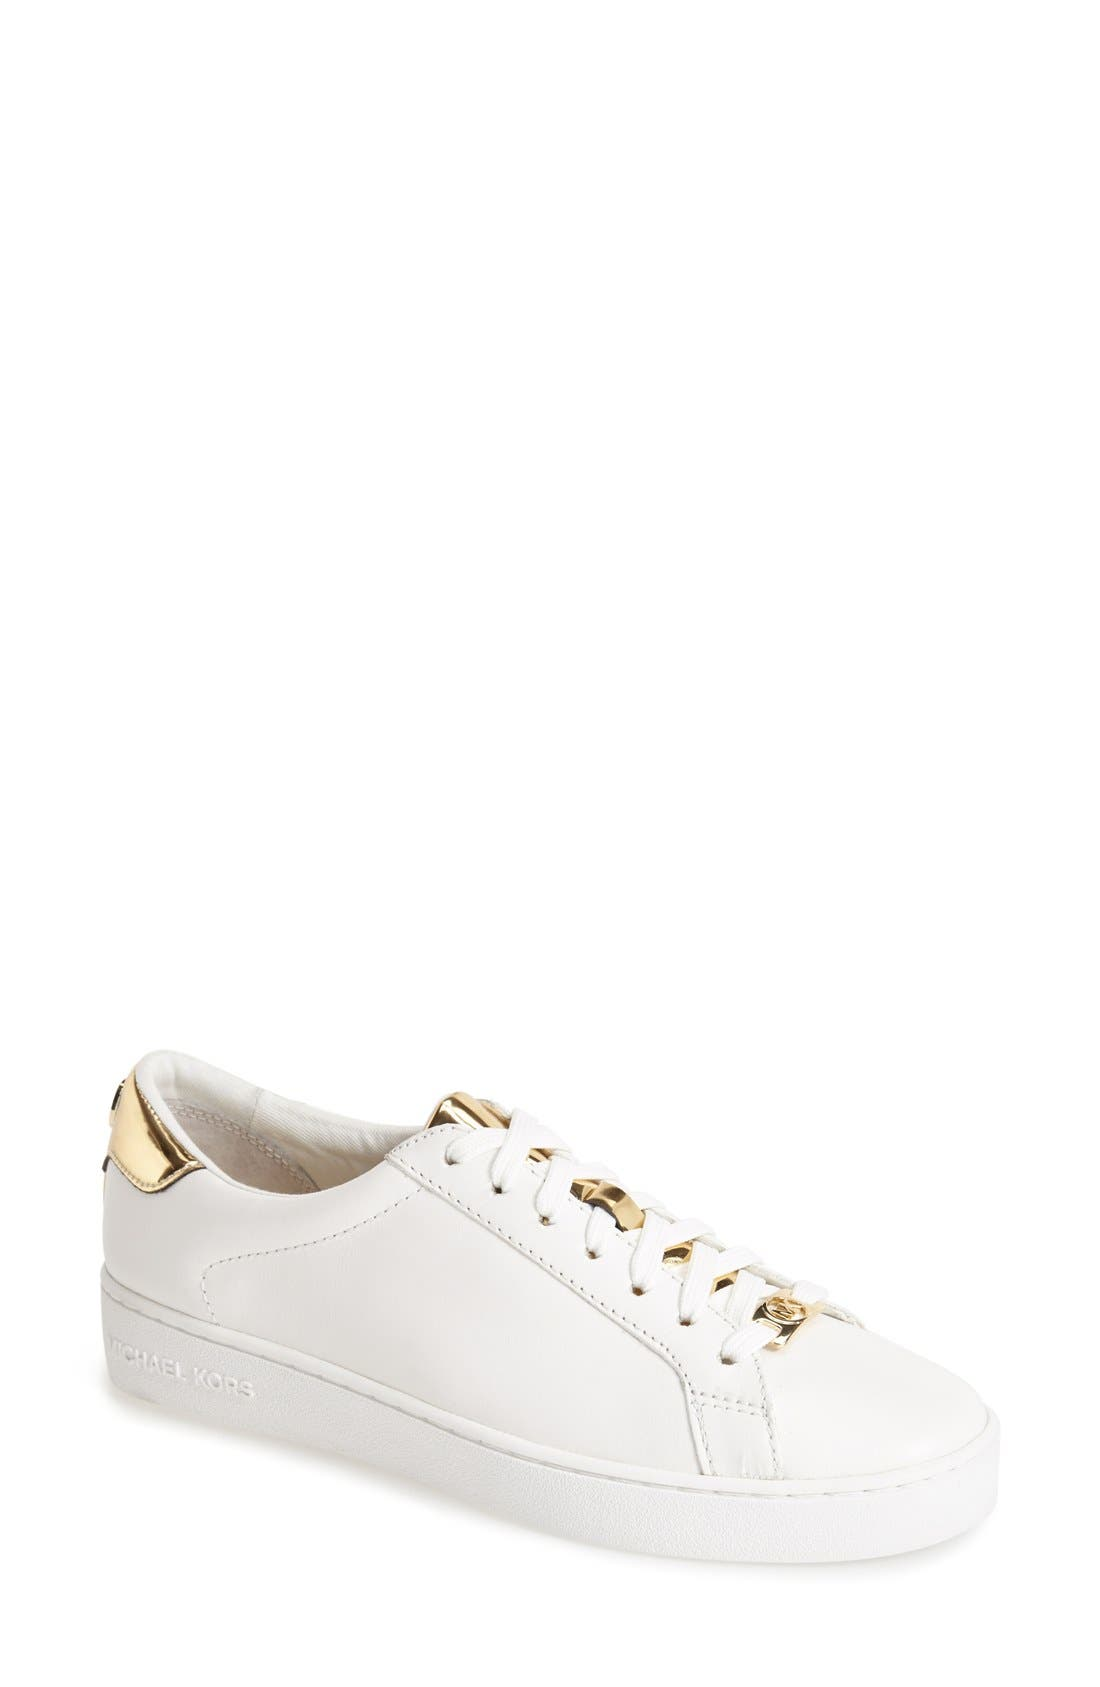 MICHAEL Michael Kors 'The Jet Set 6 - Irving' Leather Sneaker (Women)